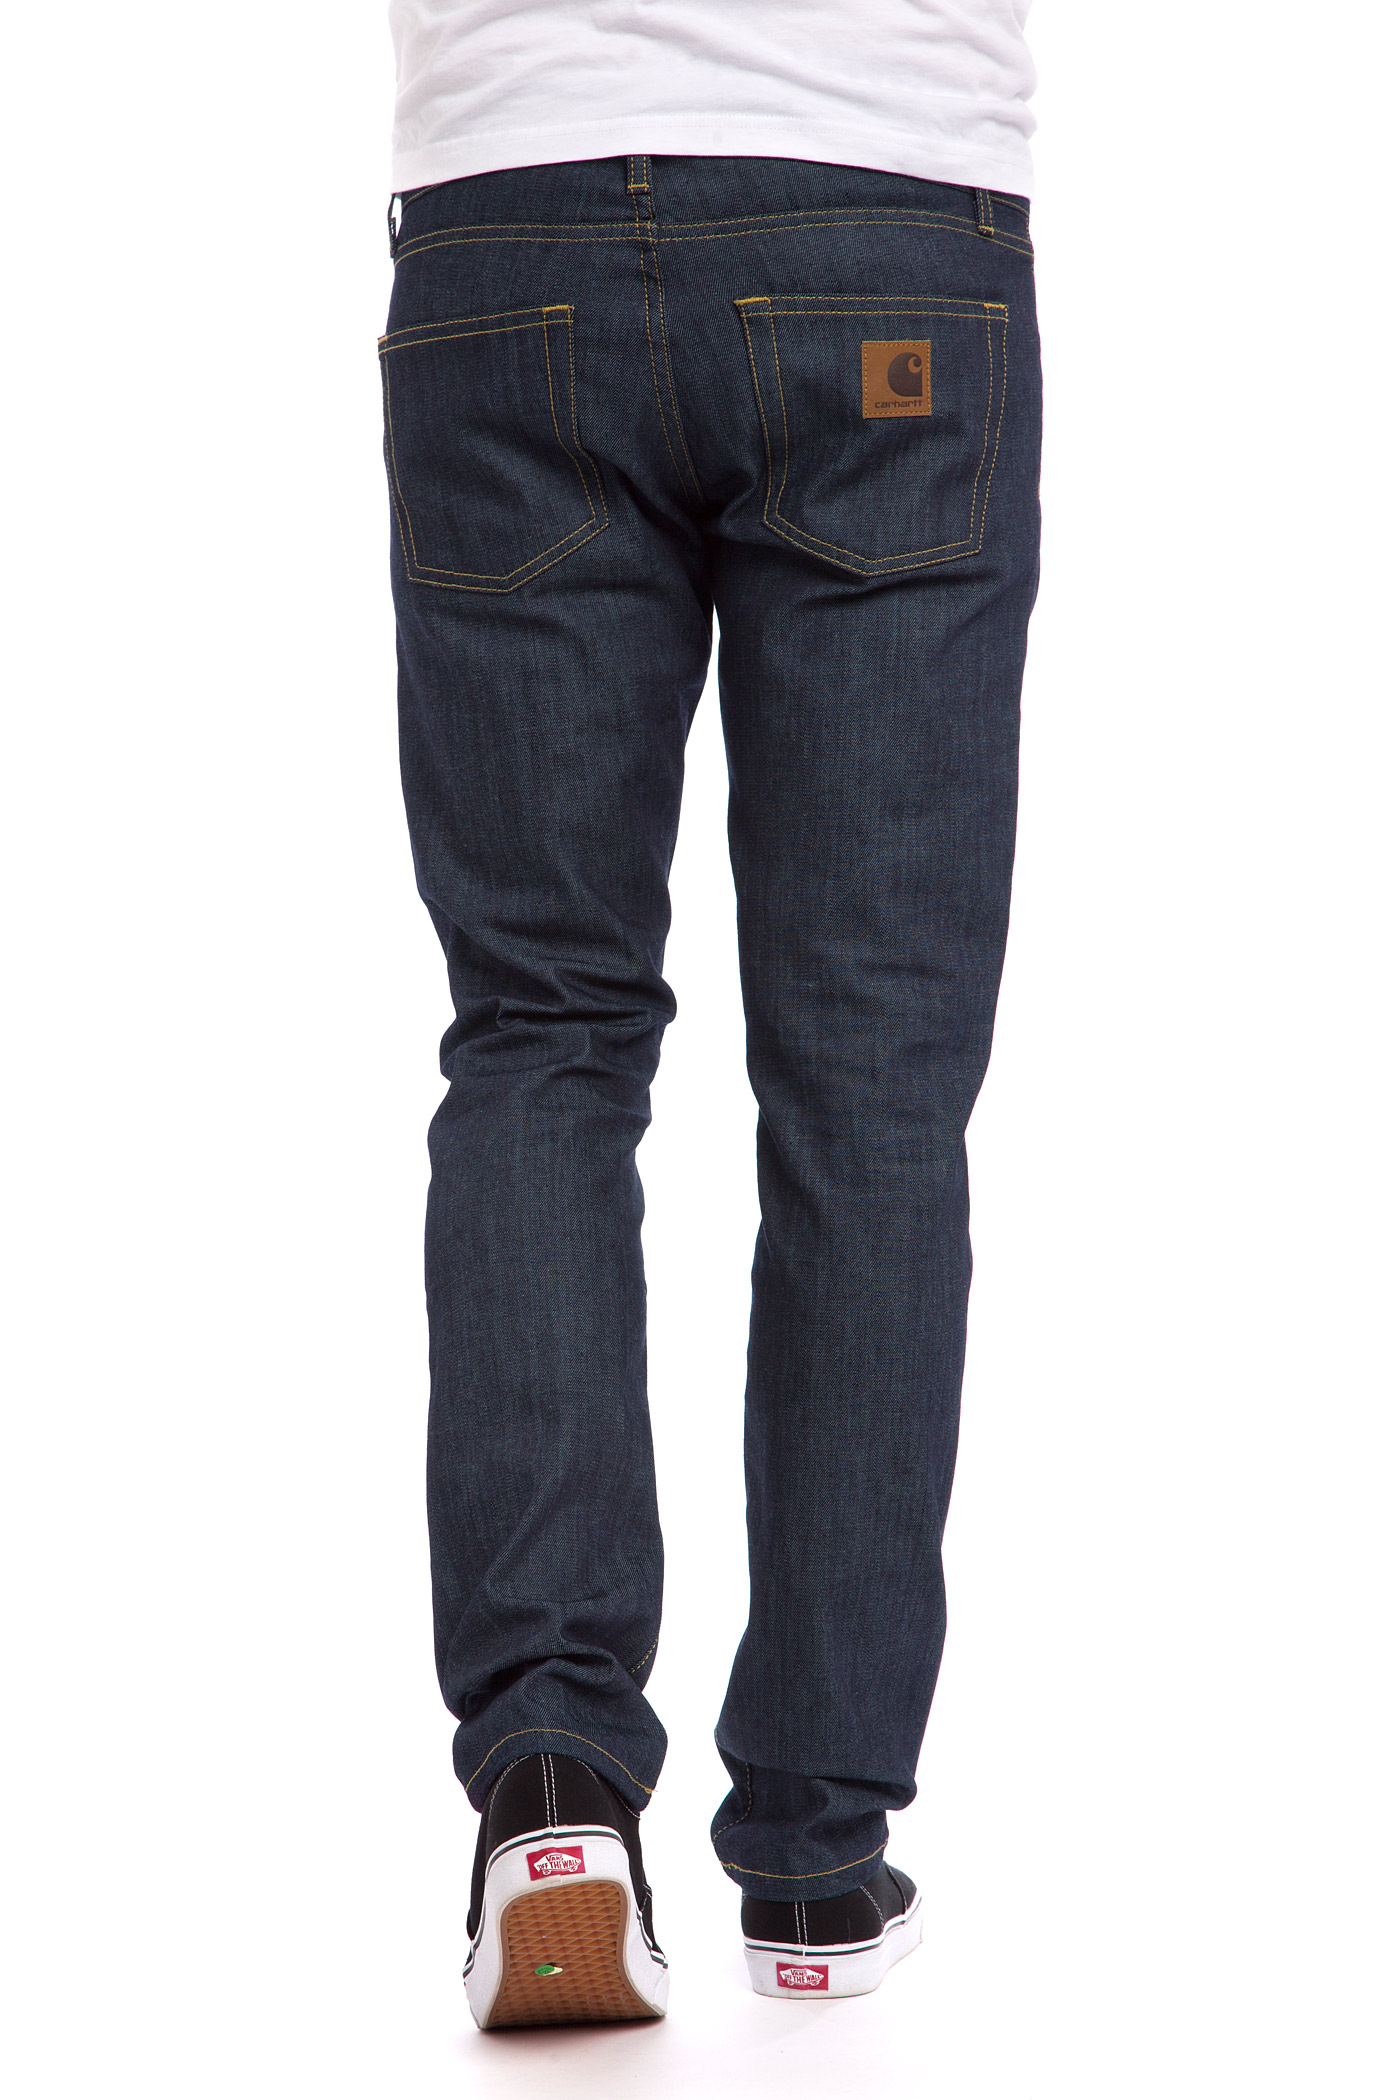 carhartt wip rebel pant colfax jeans blue rigid buy at